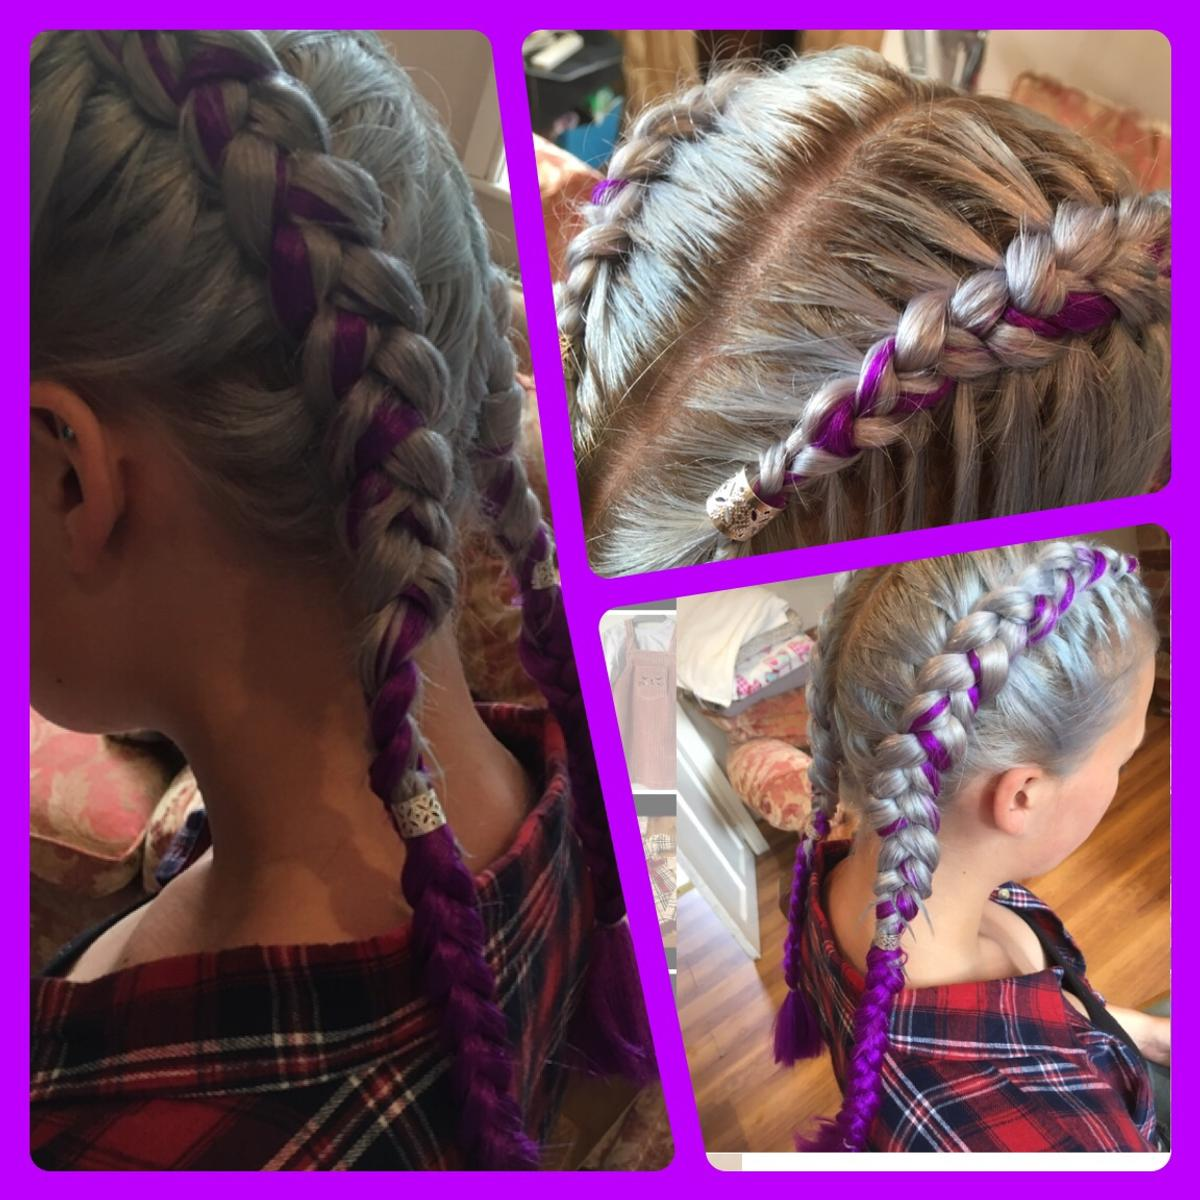 Dutch Braids Hair Styles In S5 Sheffield For Free For Sale Shpock